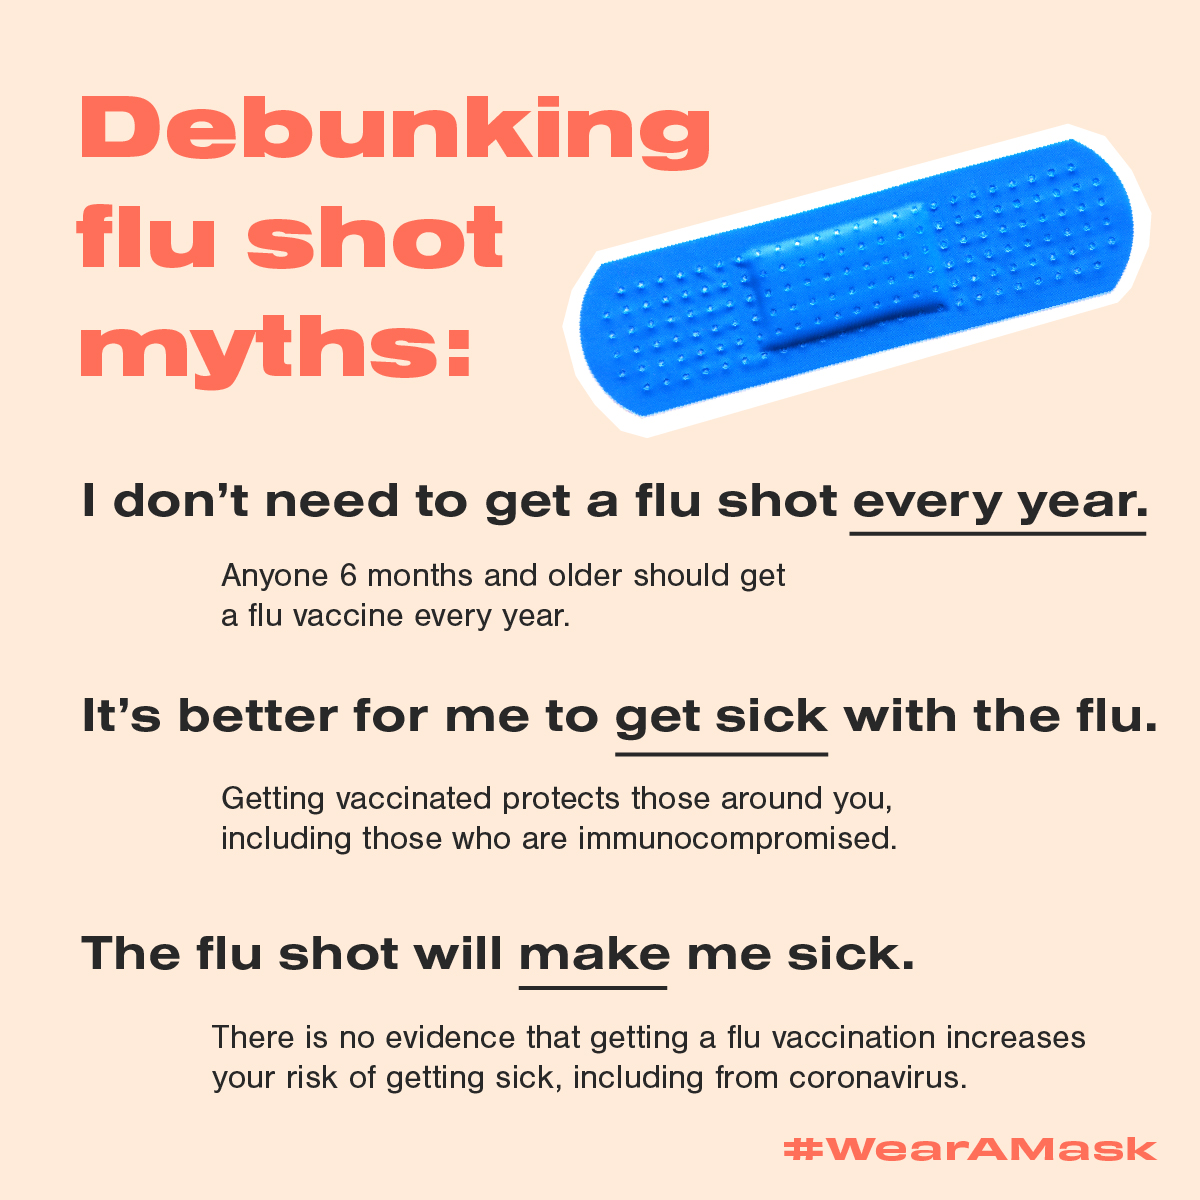 Debunking flu shot myths: I don't need to get a flu shot every year. Anyone 6 months and older should get a fly vaccine every year. It's better for me to get sick with the flu. Getitng vaccinated protects those around you, including those who are immunocompromised. The flu shot will make me sick. There is no evidence that getting a flu vaccination increases your risk of getting sick, including from coronavirus. #WearAMask